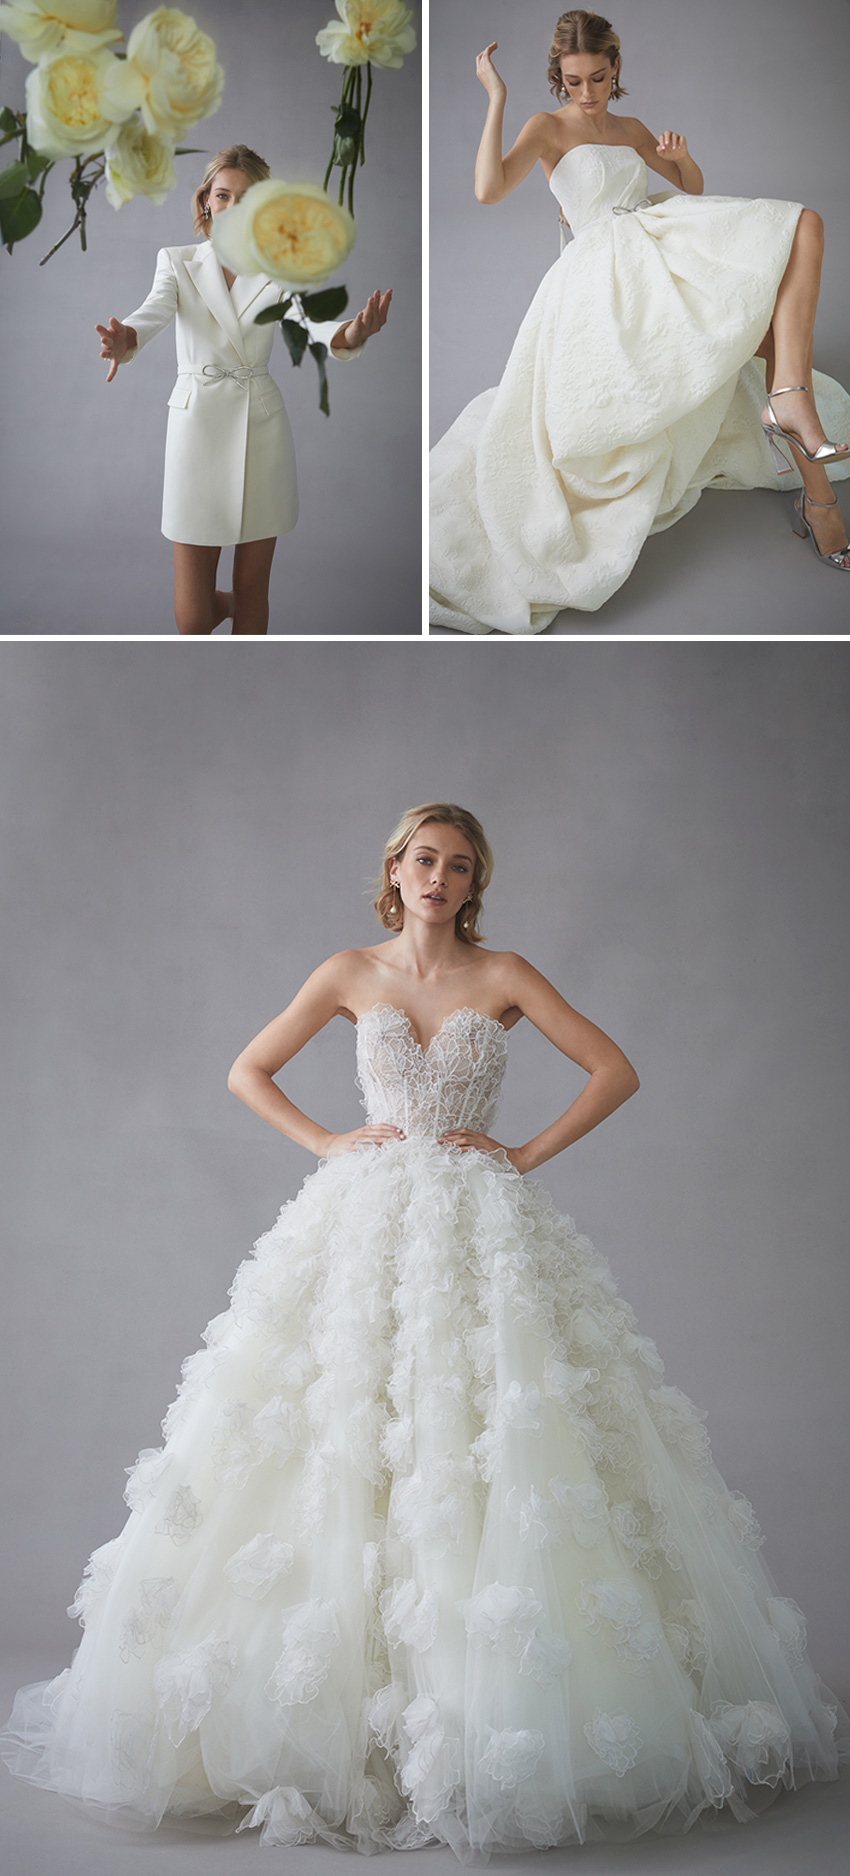 Oscar de la Renta Spring 2022 bridal collection